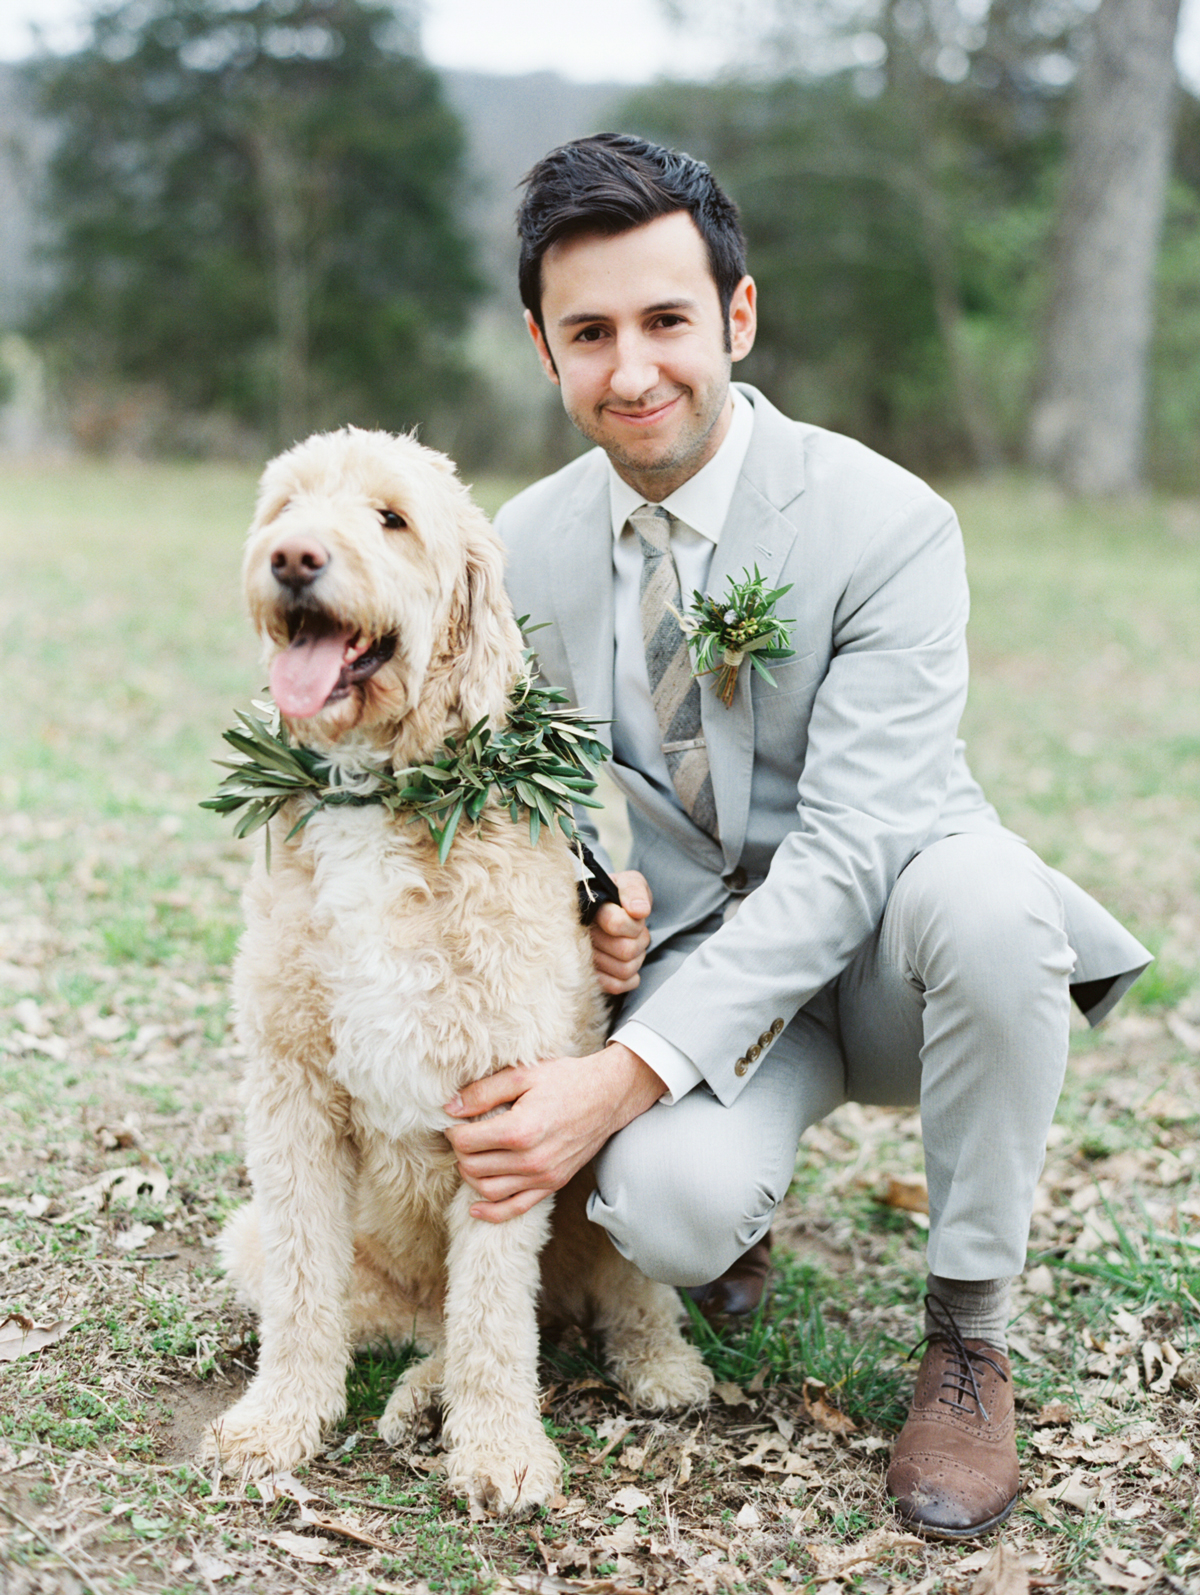 wedding wreath worn by dog sitting next to groom